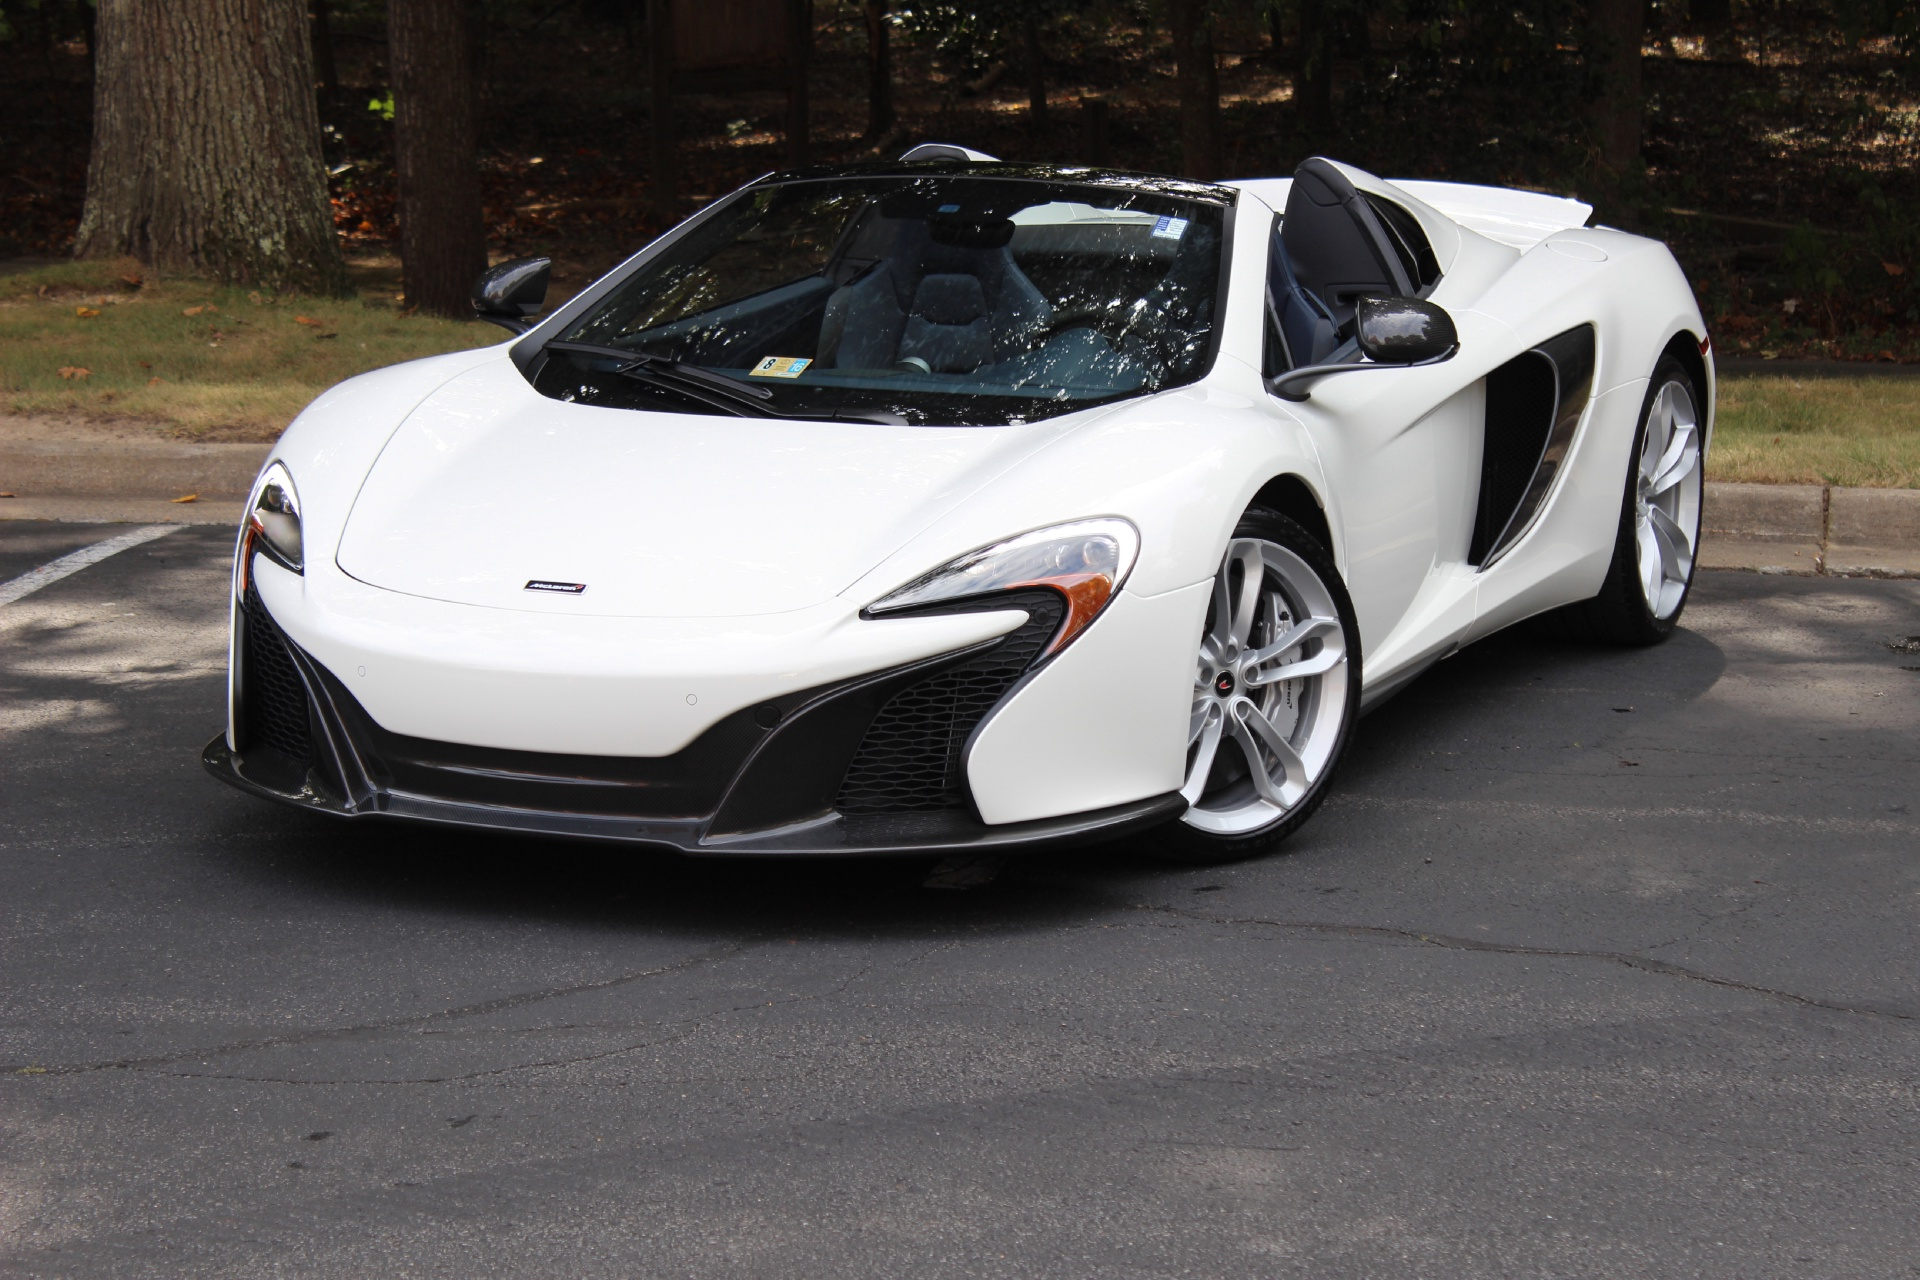 2016 mclaren 650s spider stock # 6w005604 for sale near vienna, va